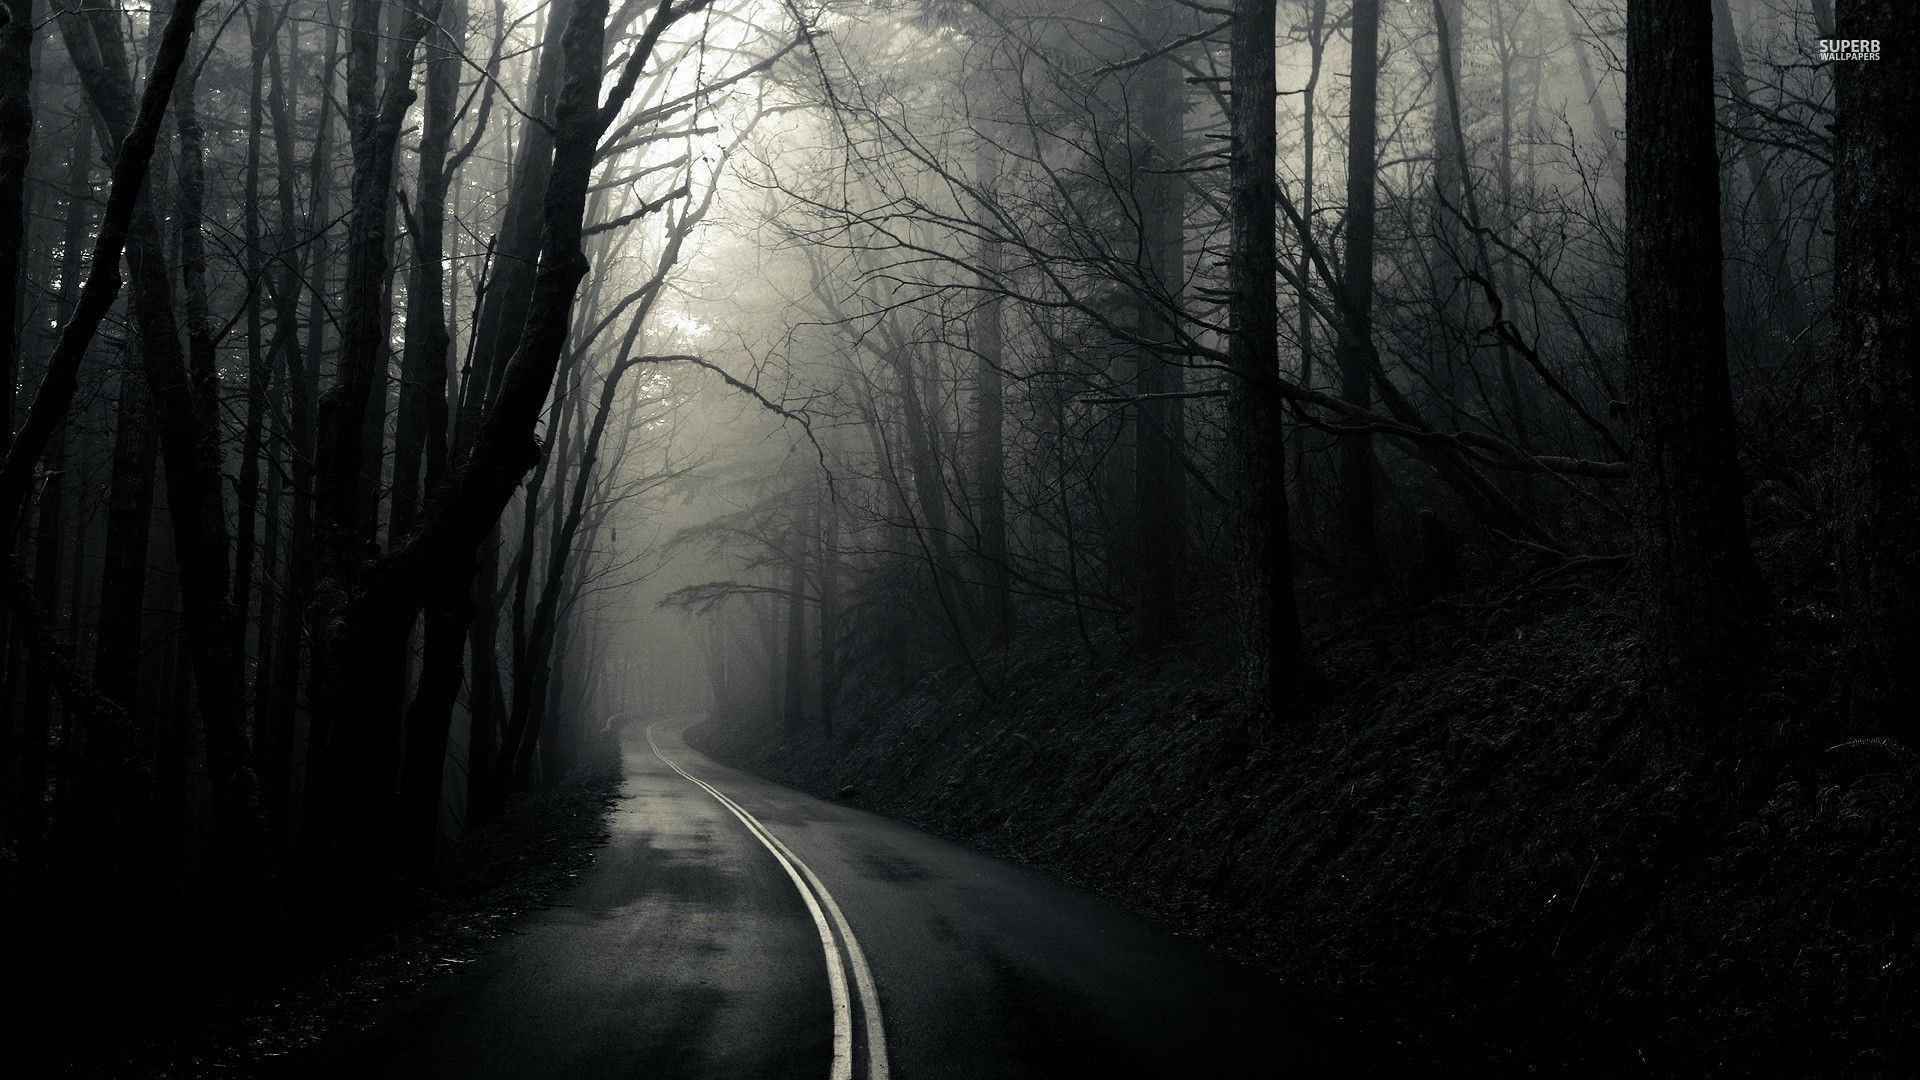 Spooky forest wallpaper 68 images - Hd wallpapers of darkness ...